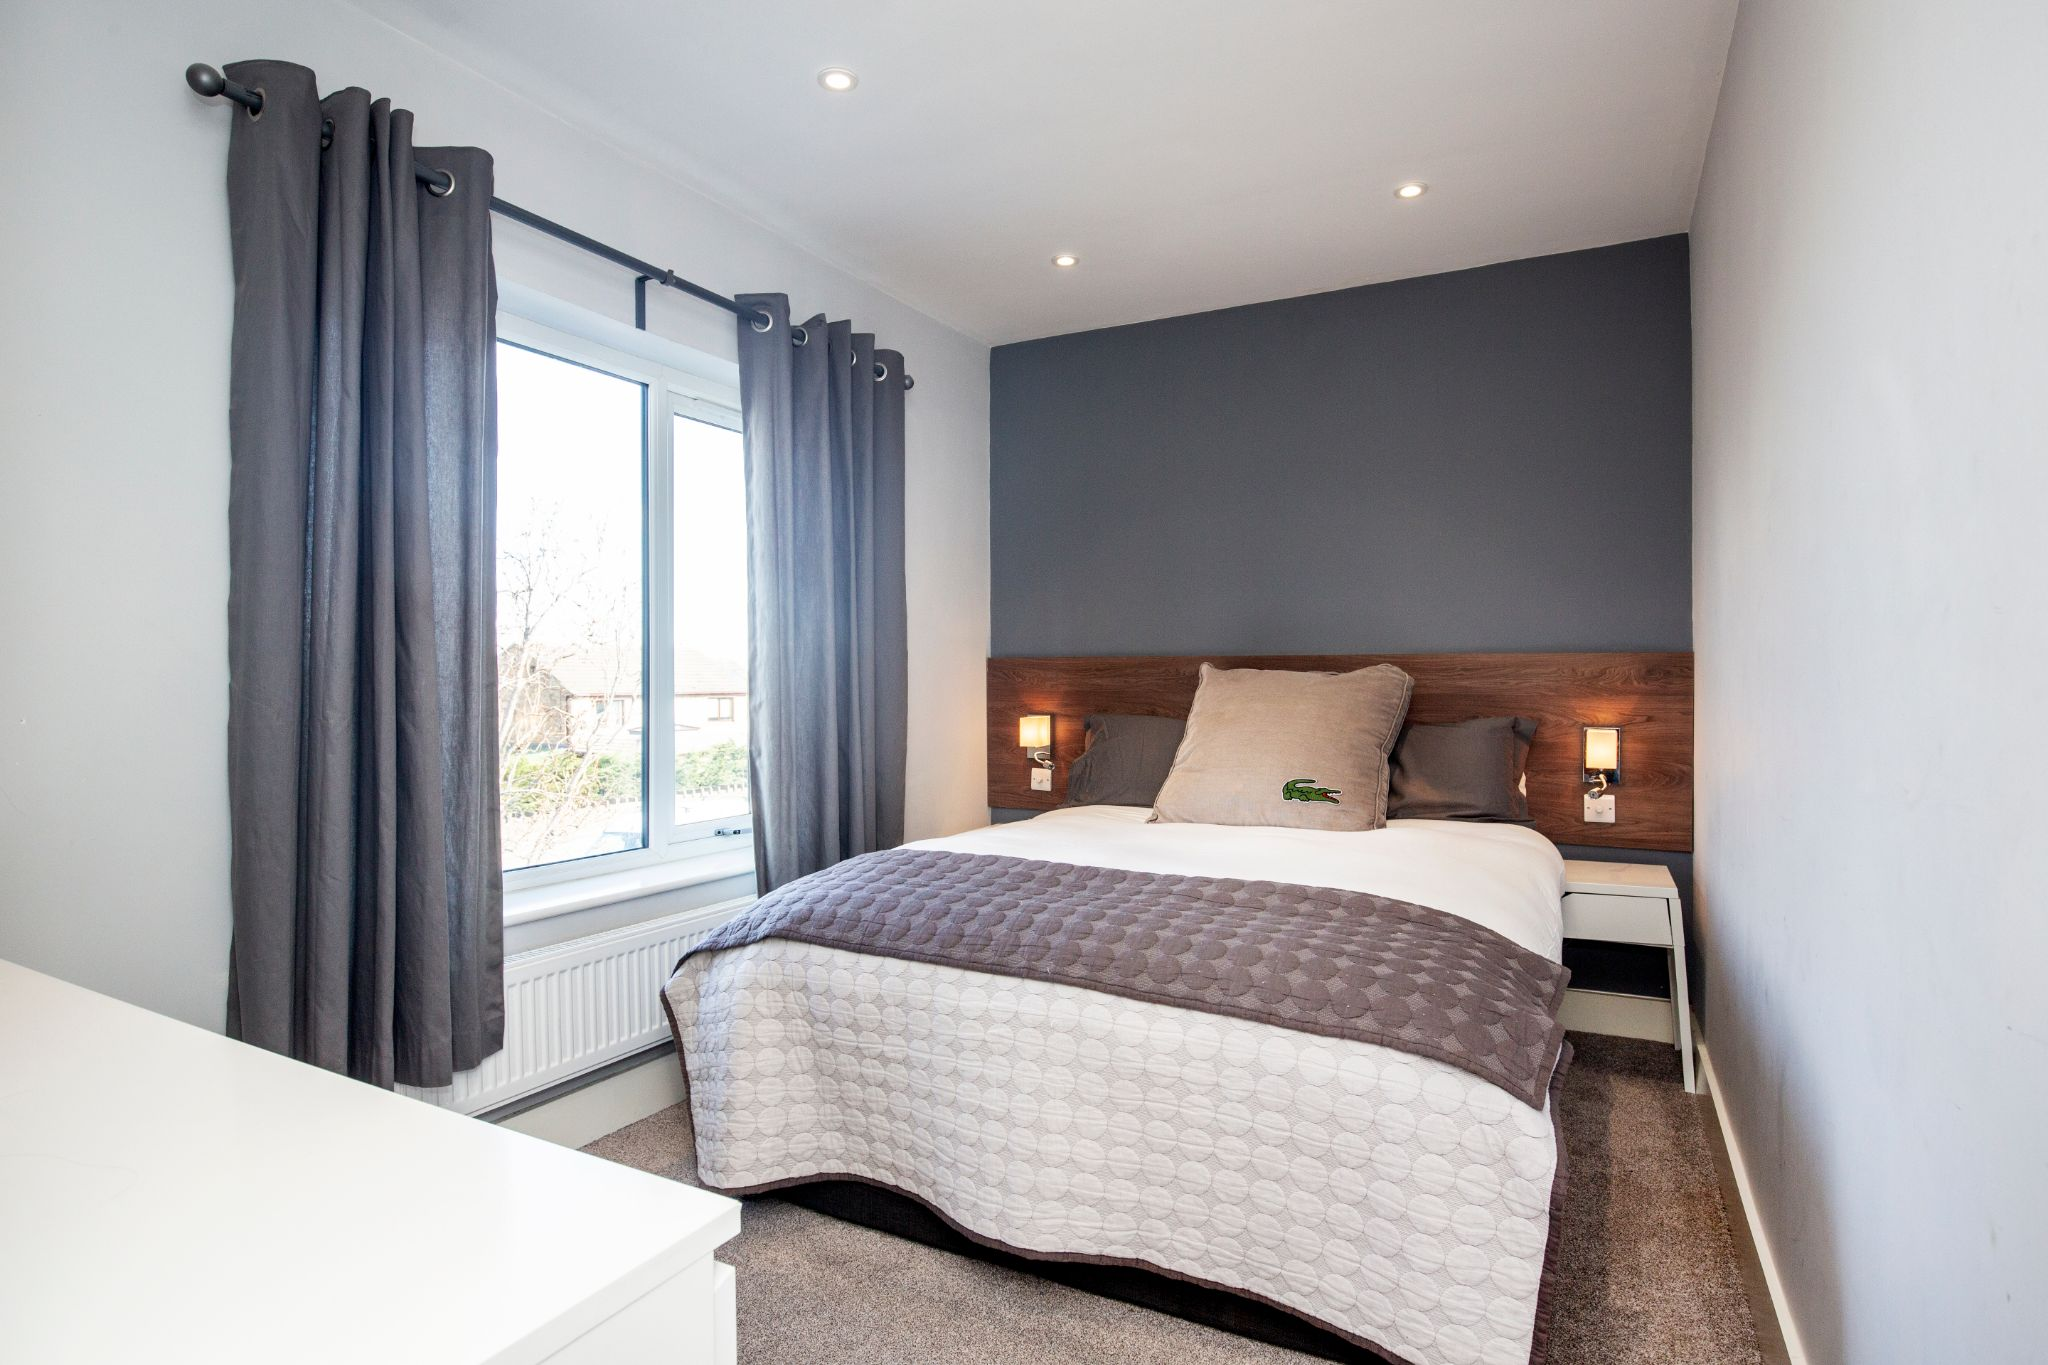 4 bedroom detached house For Sale in Brighouse - Bedroom 3